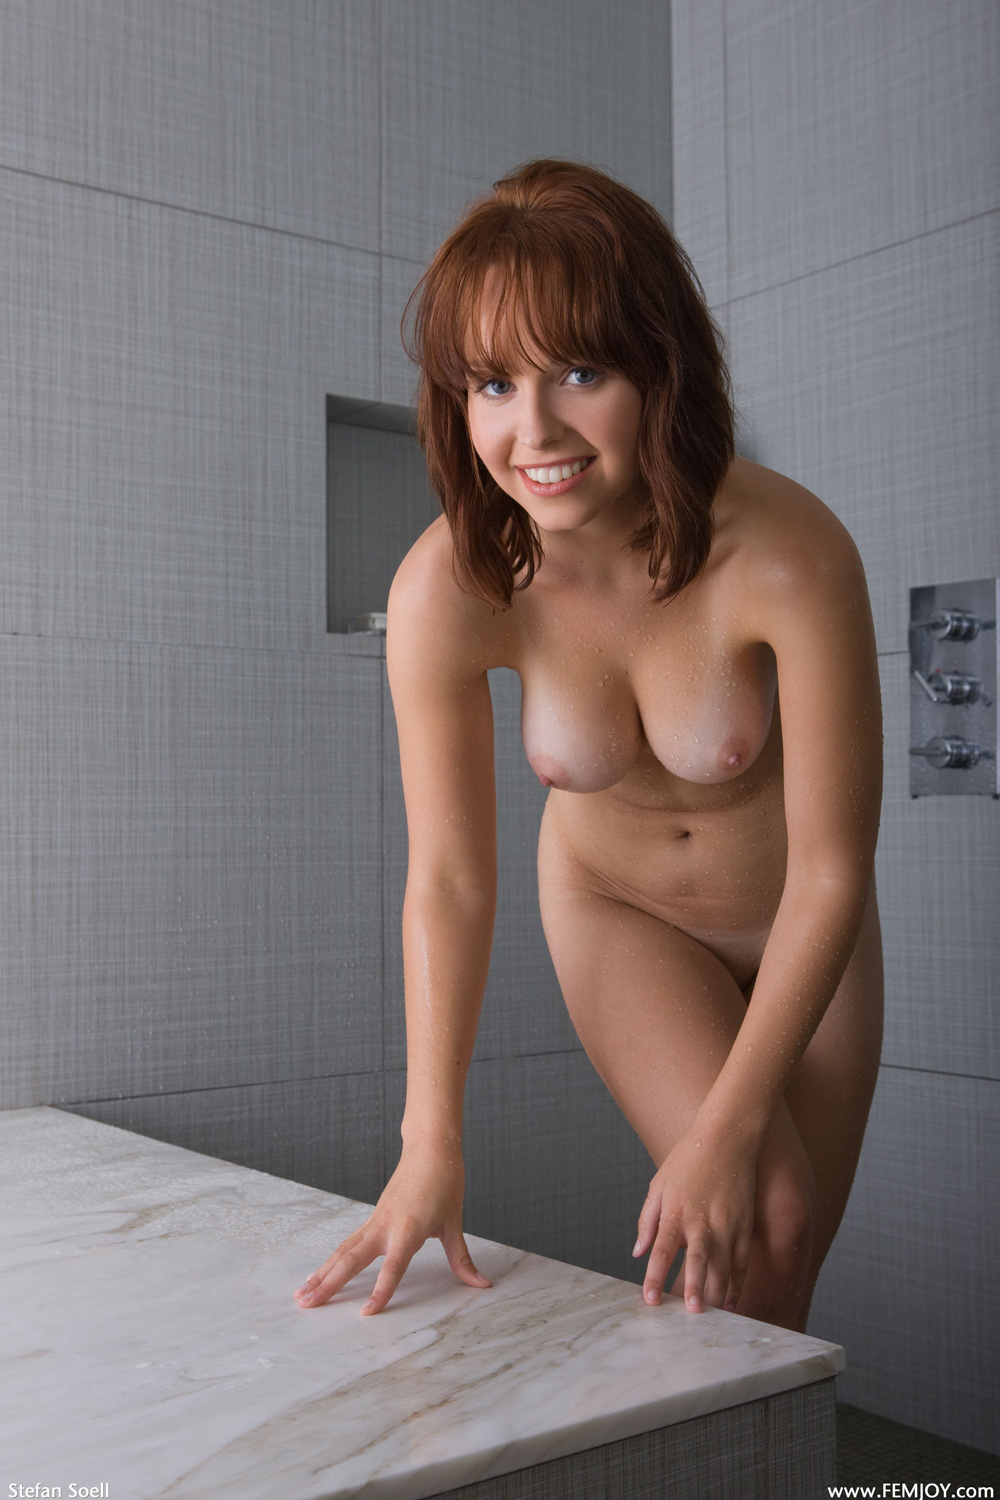 Sweet pussy on